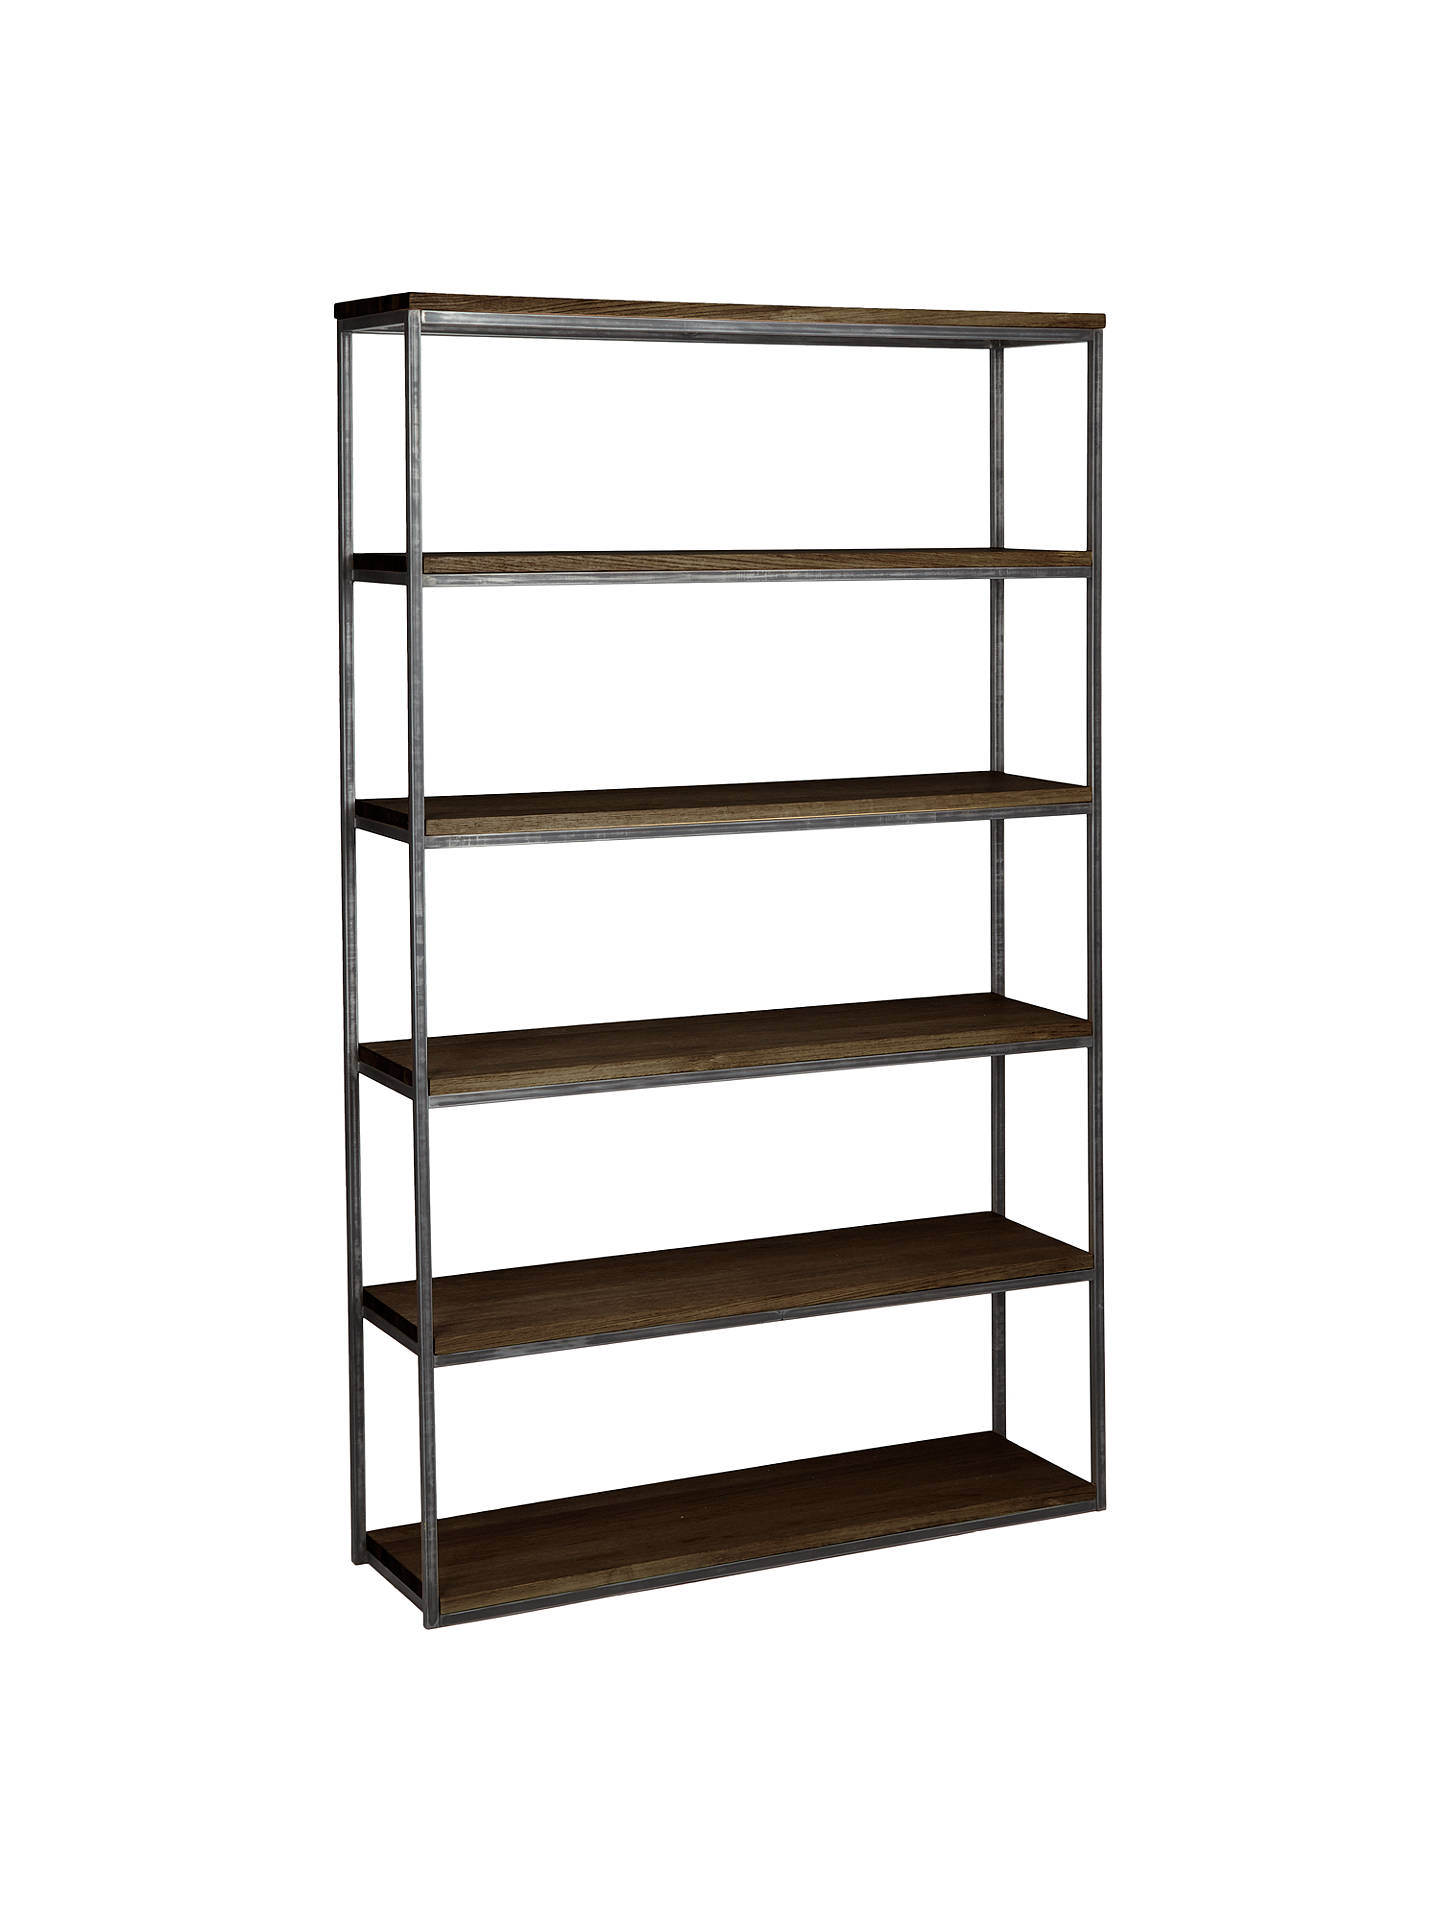 40cbb6d0d34f Buy John Lewis & Partners Calia Tall Wide Shelving Unit, Dark Online at  johnlewis.